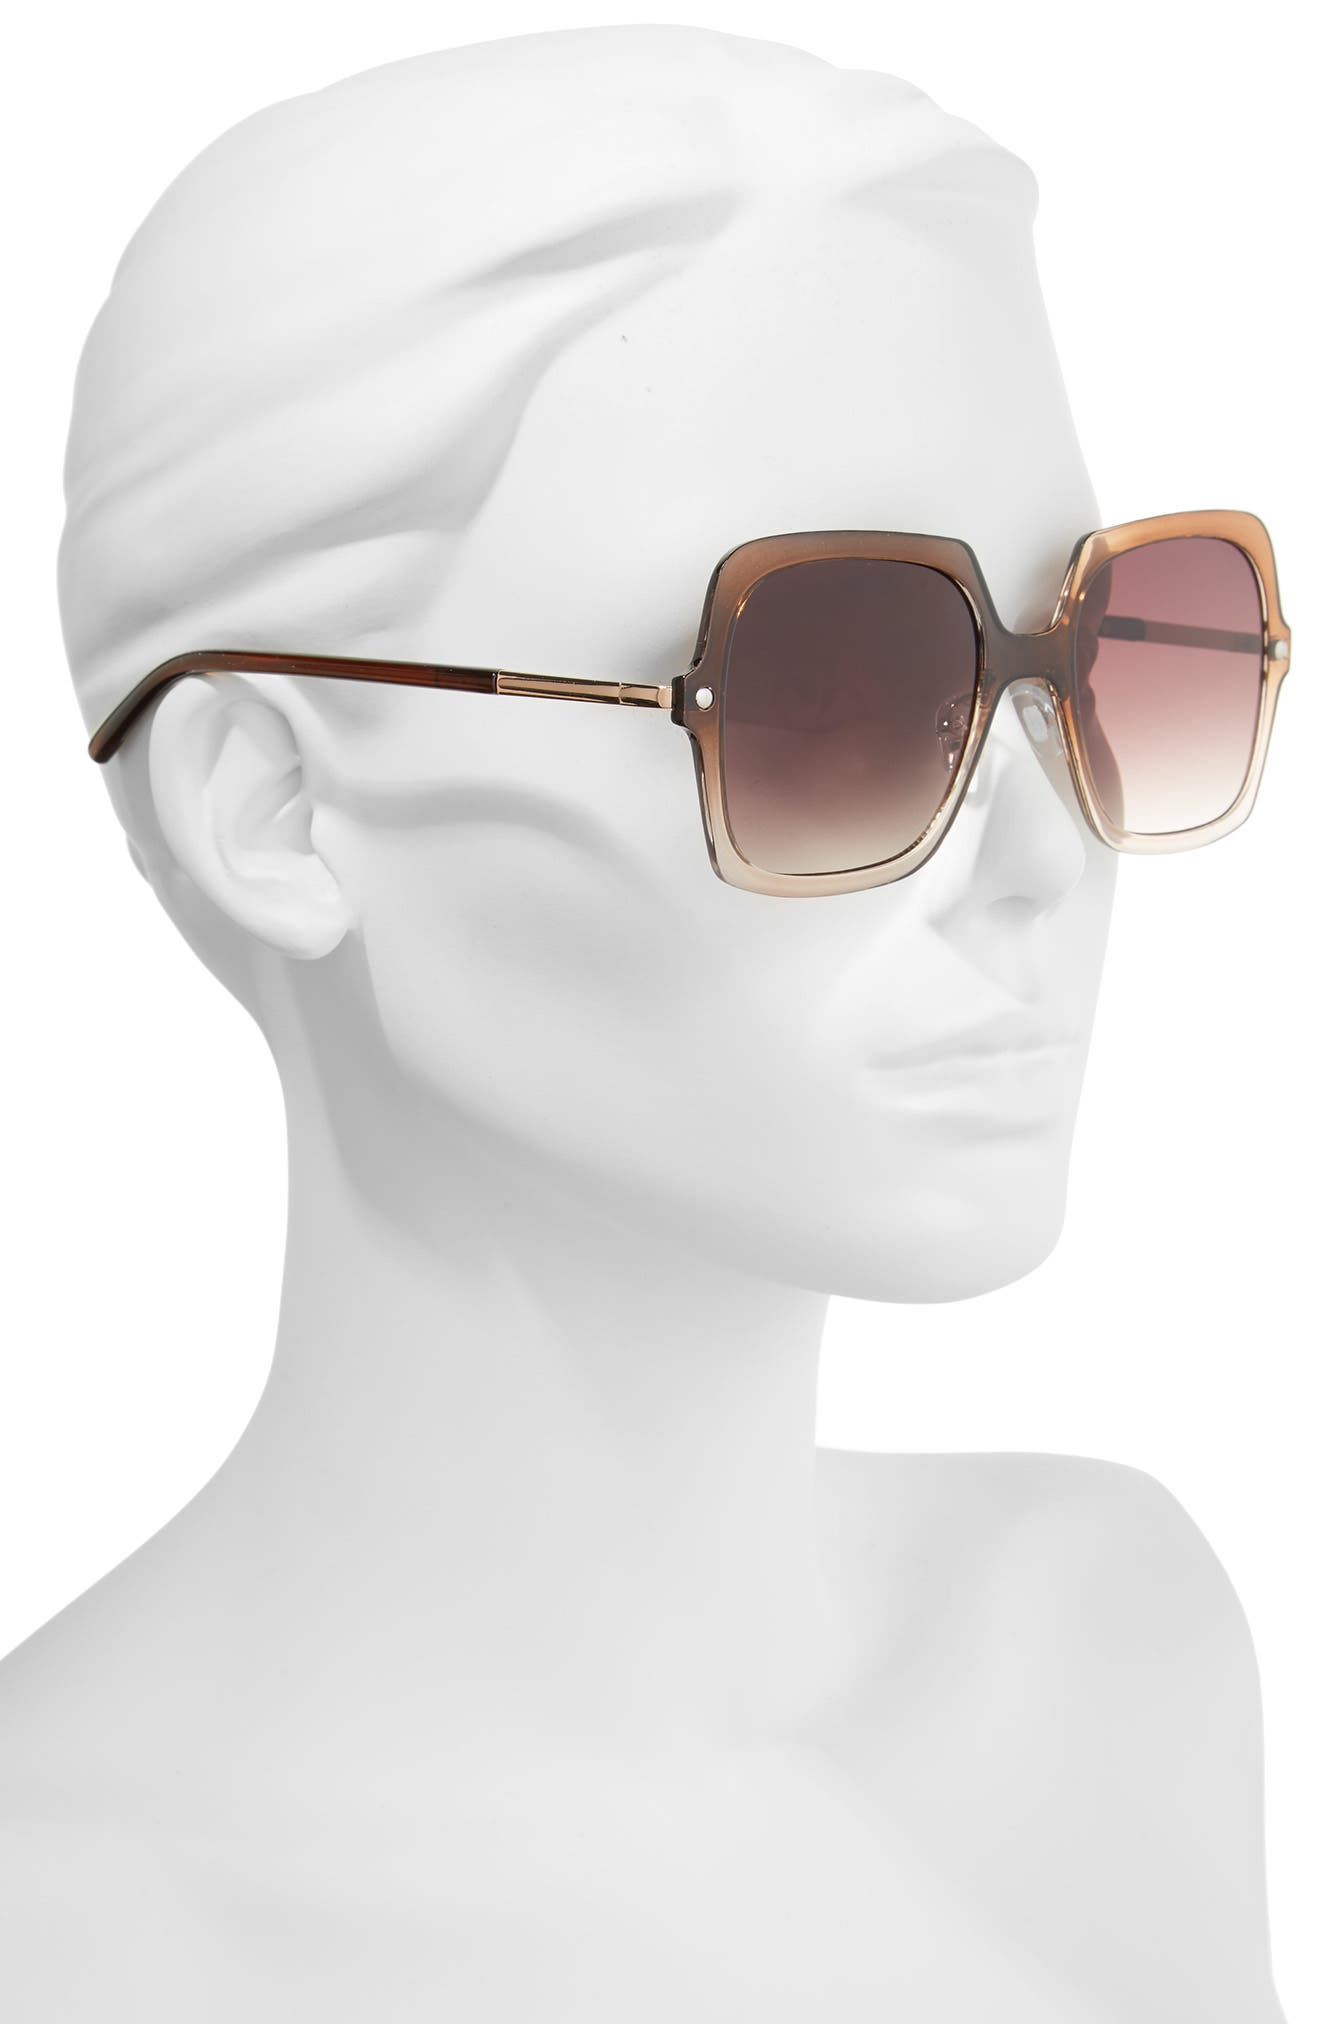 Translucent Square Sunglasses,                             Alternate thumbnail 2, color,                             Ombre Brown